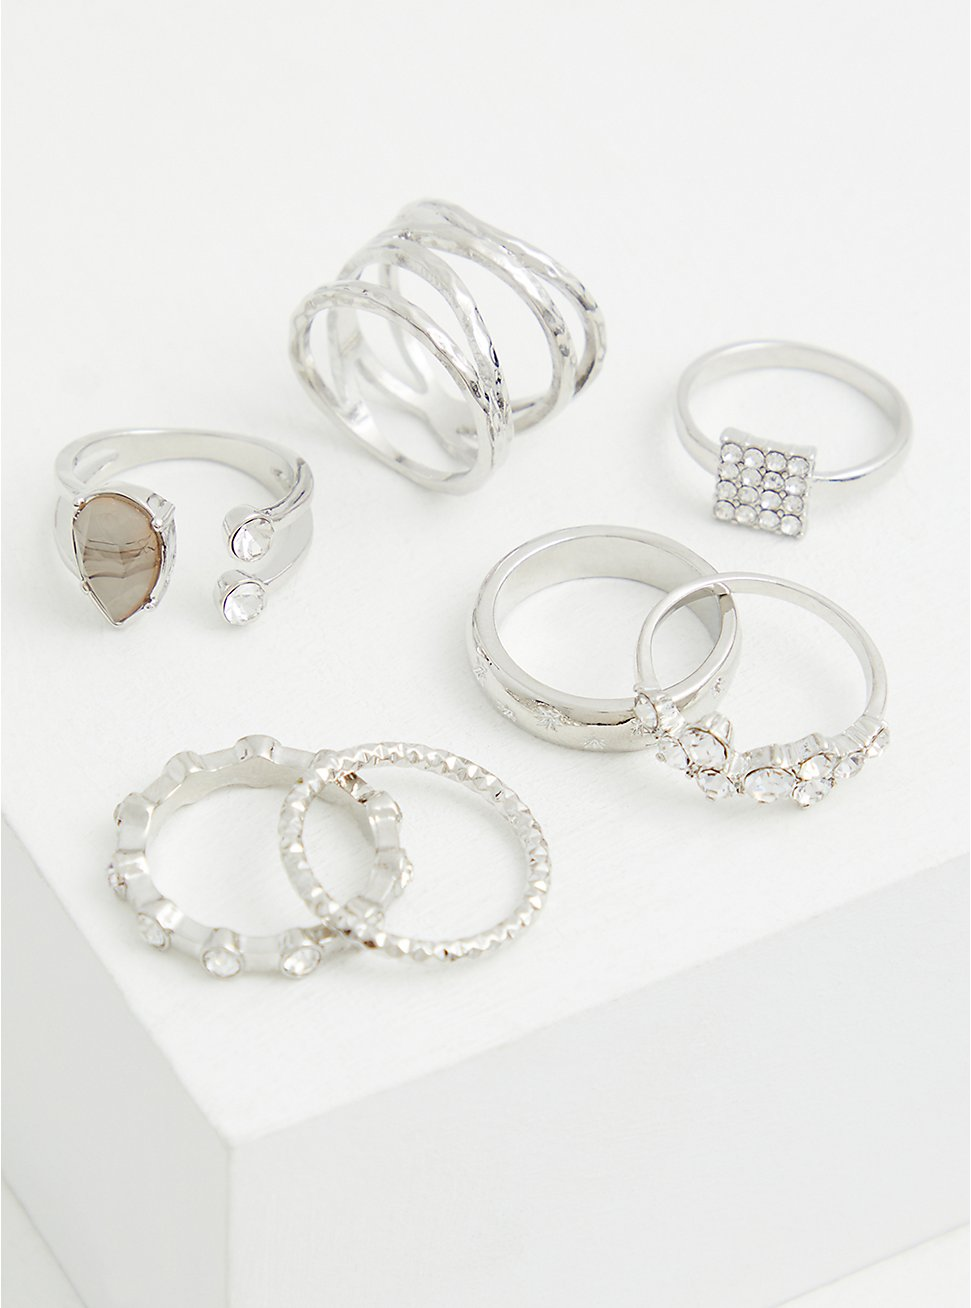 Silver-Tone Grey Stone Ring Set - Set of 7, GOLD, hi-res